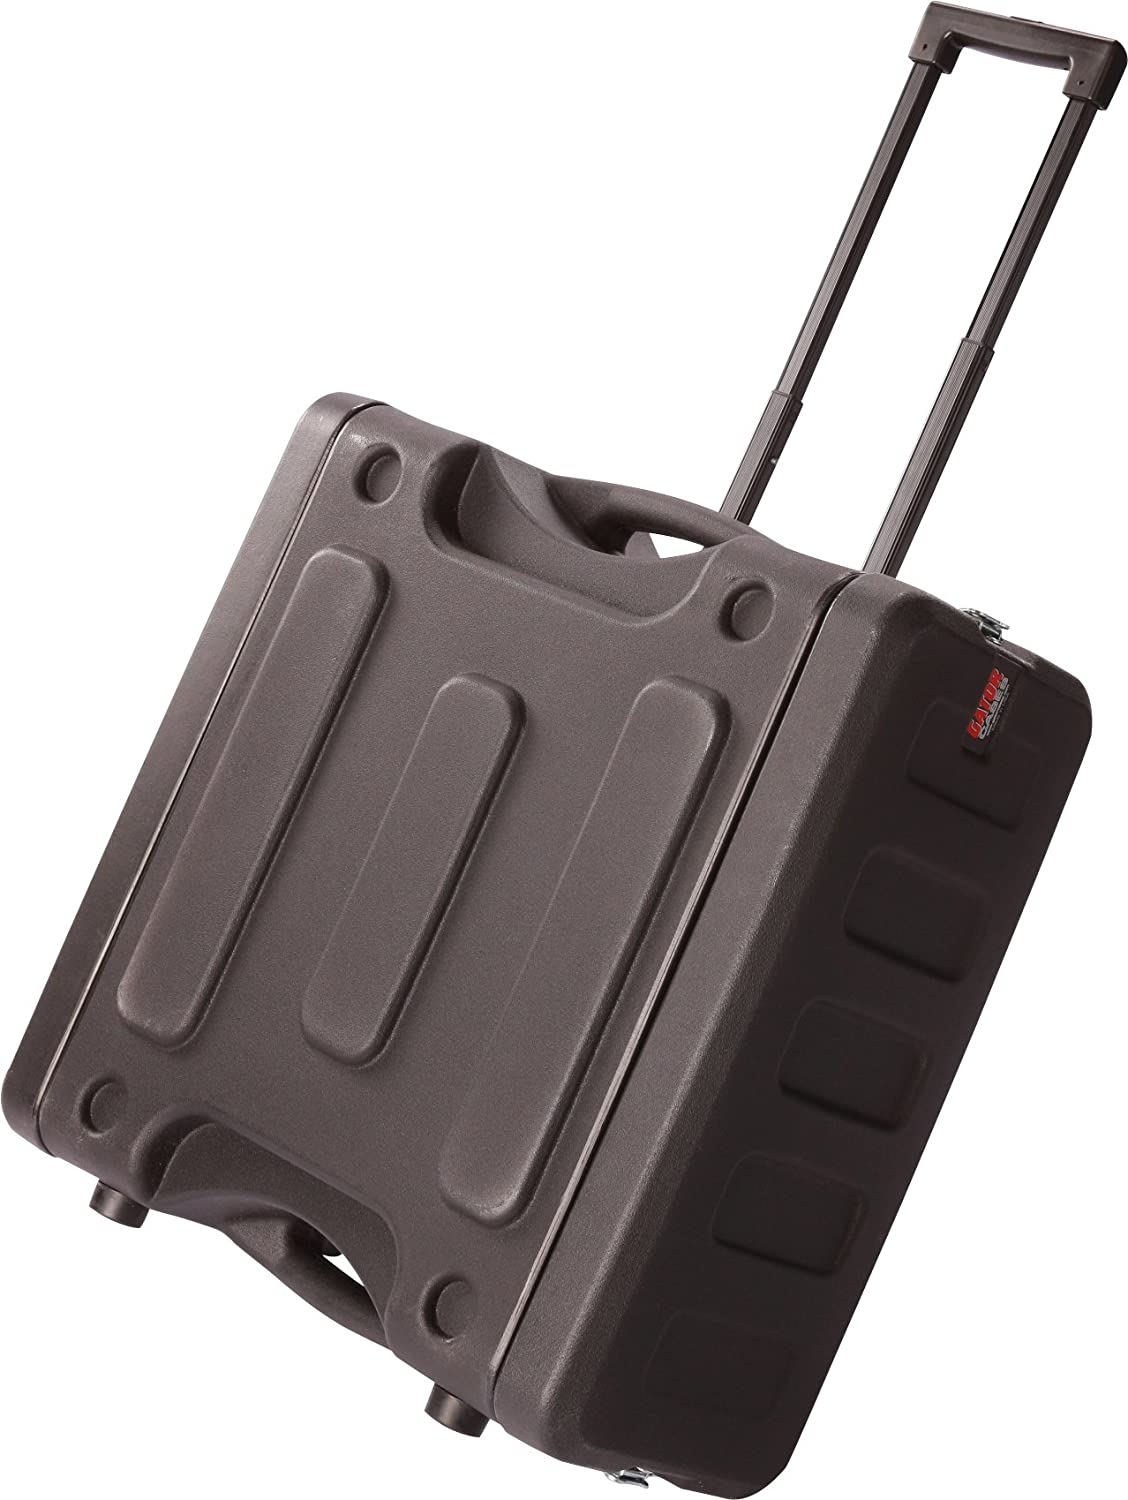 Gator Cases Pro Series Rotationally Molded Rack Case (6 Space) G-PRO-6U-19